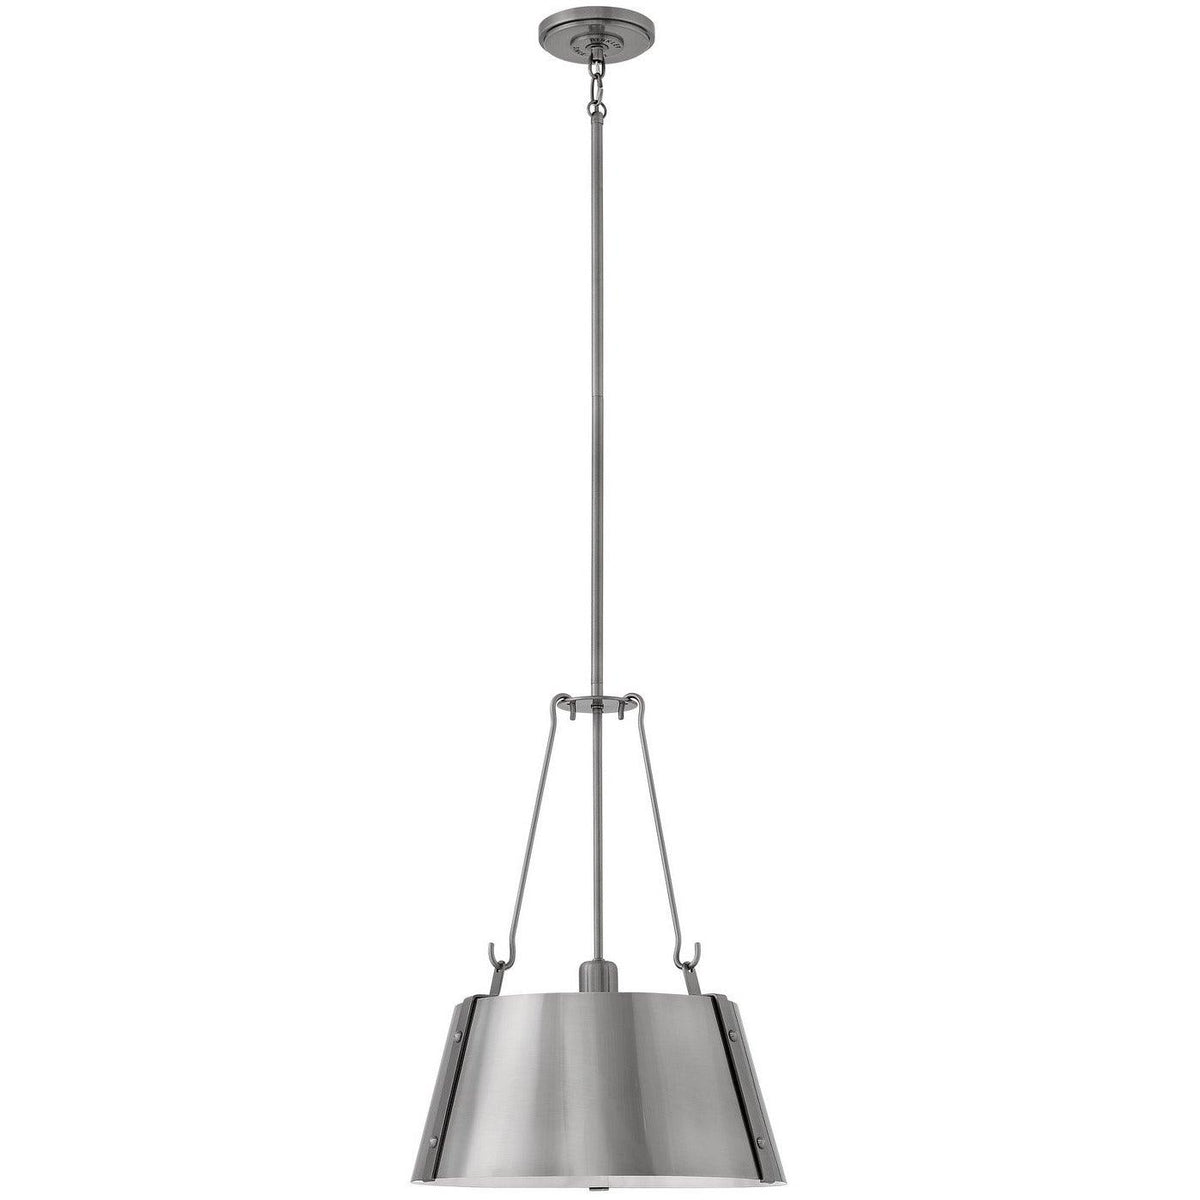 Hinkley Canada - 3394PL - One Light Pendant - Cartwright - Polished Antique Nickel